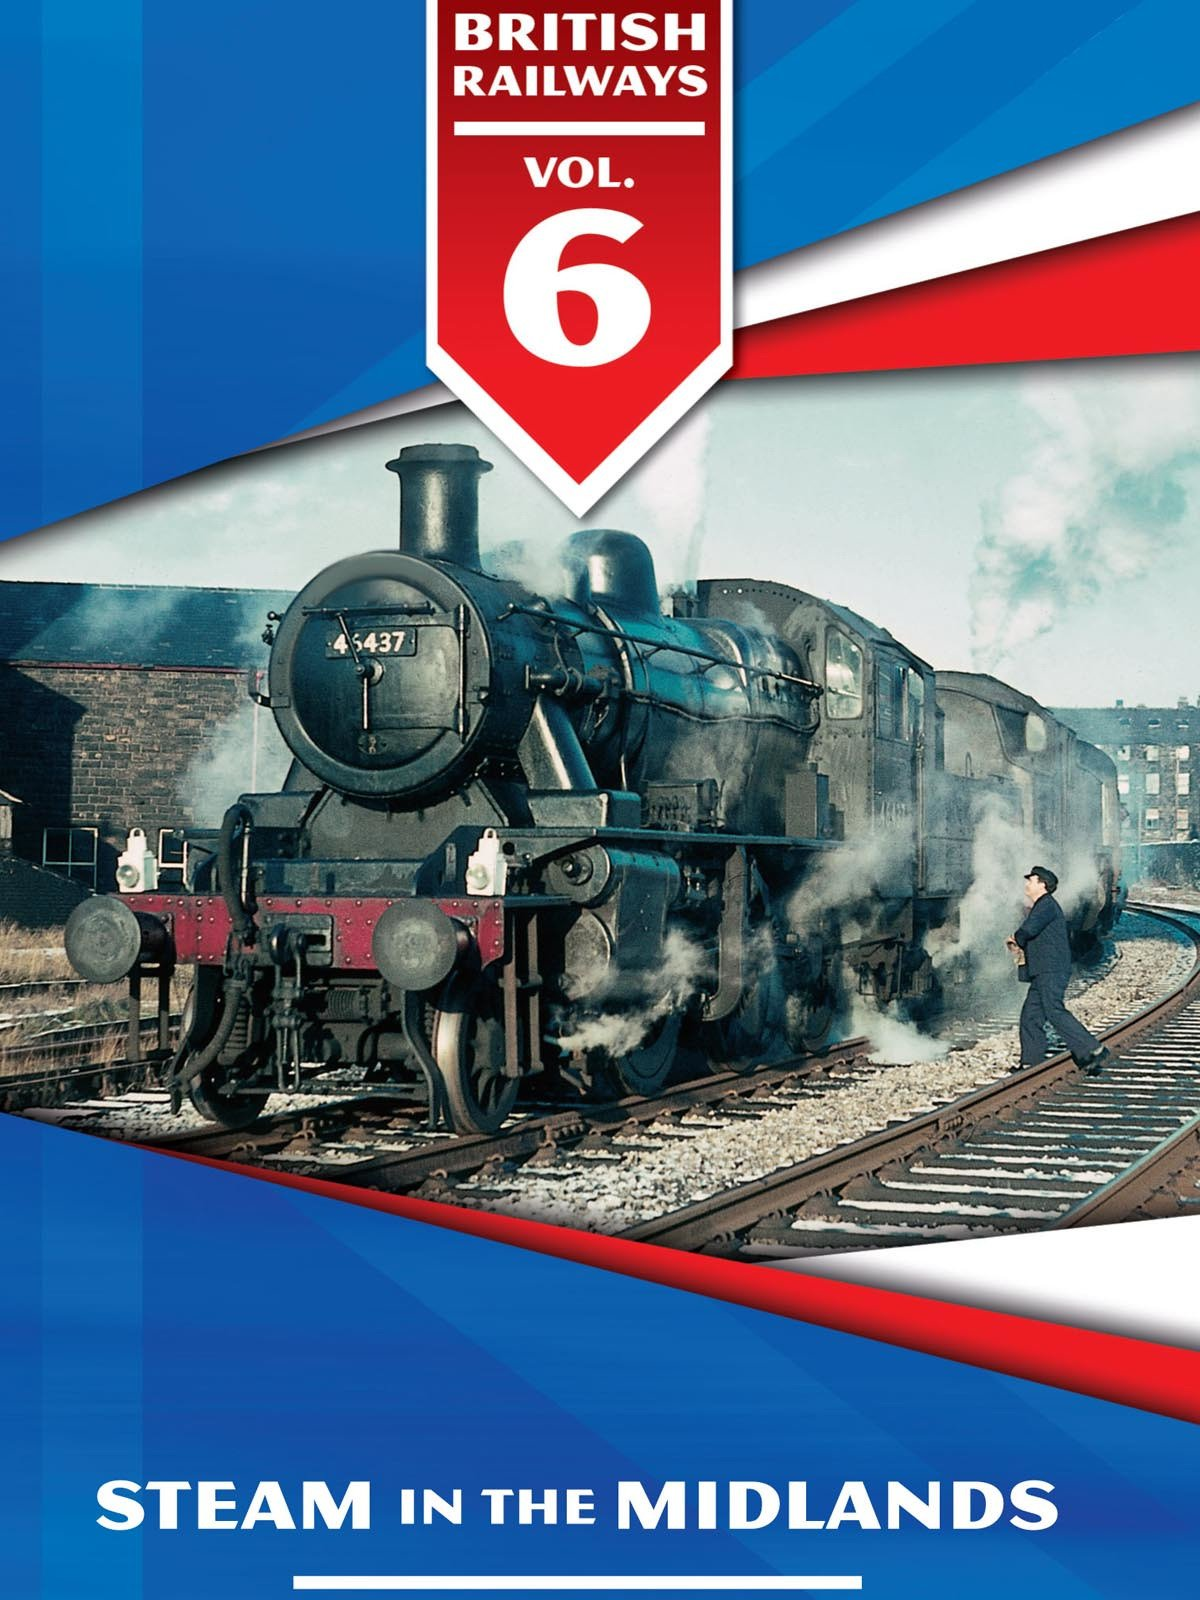 British Railways Volume 6: Steam in the Midlands